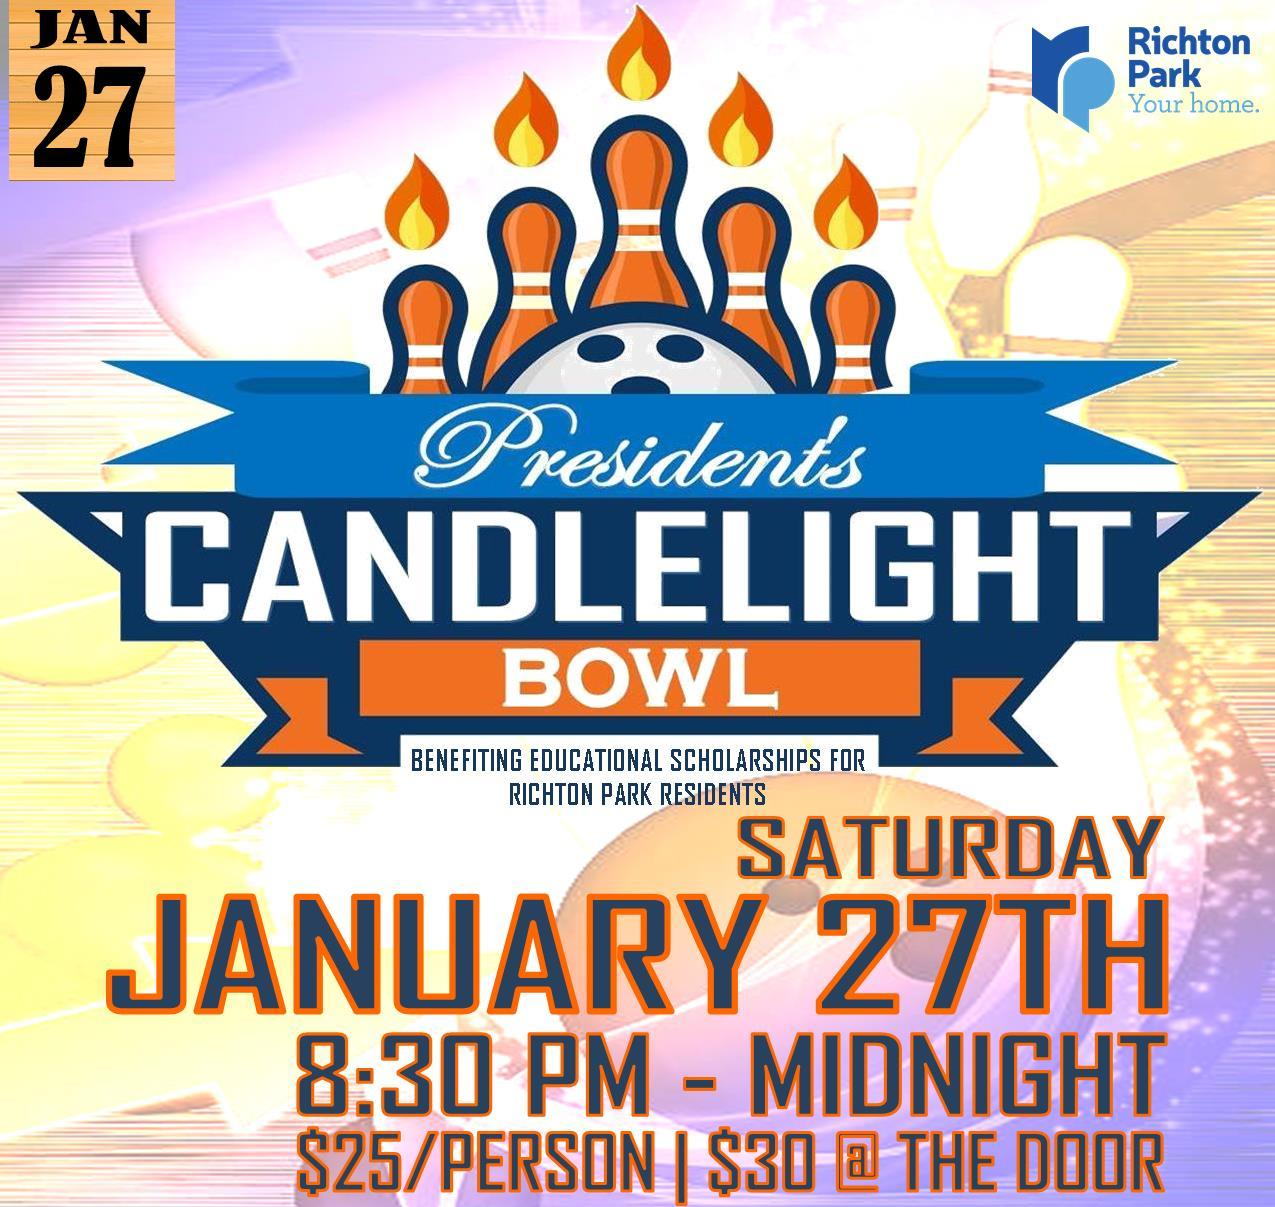 Candlelight Bowl 2017 sq